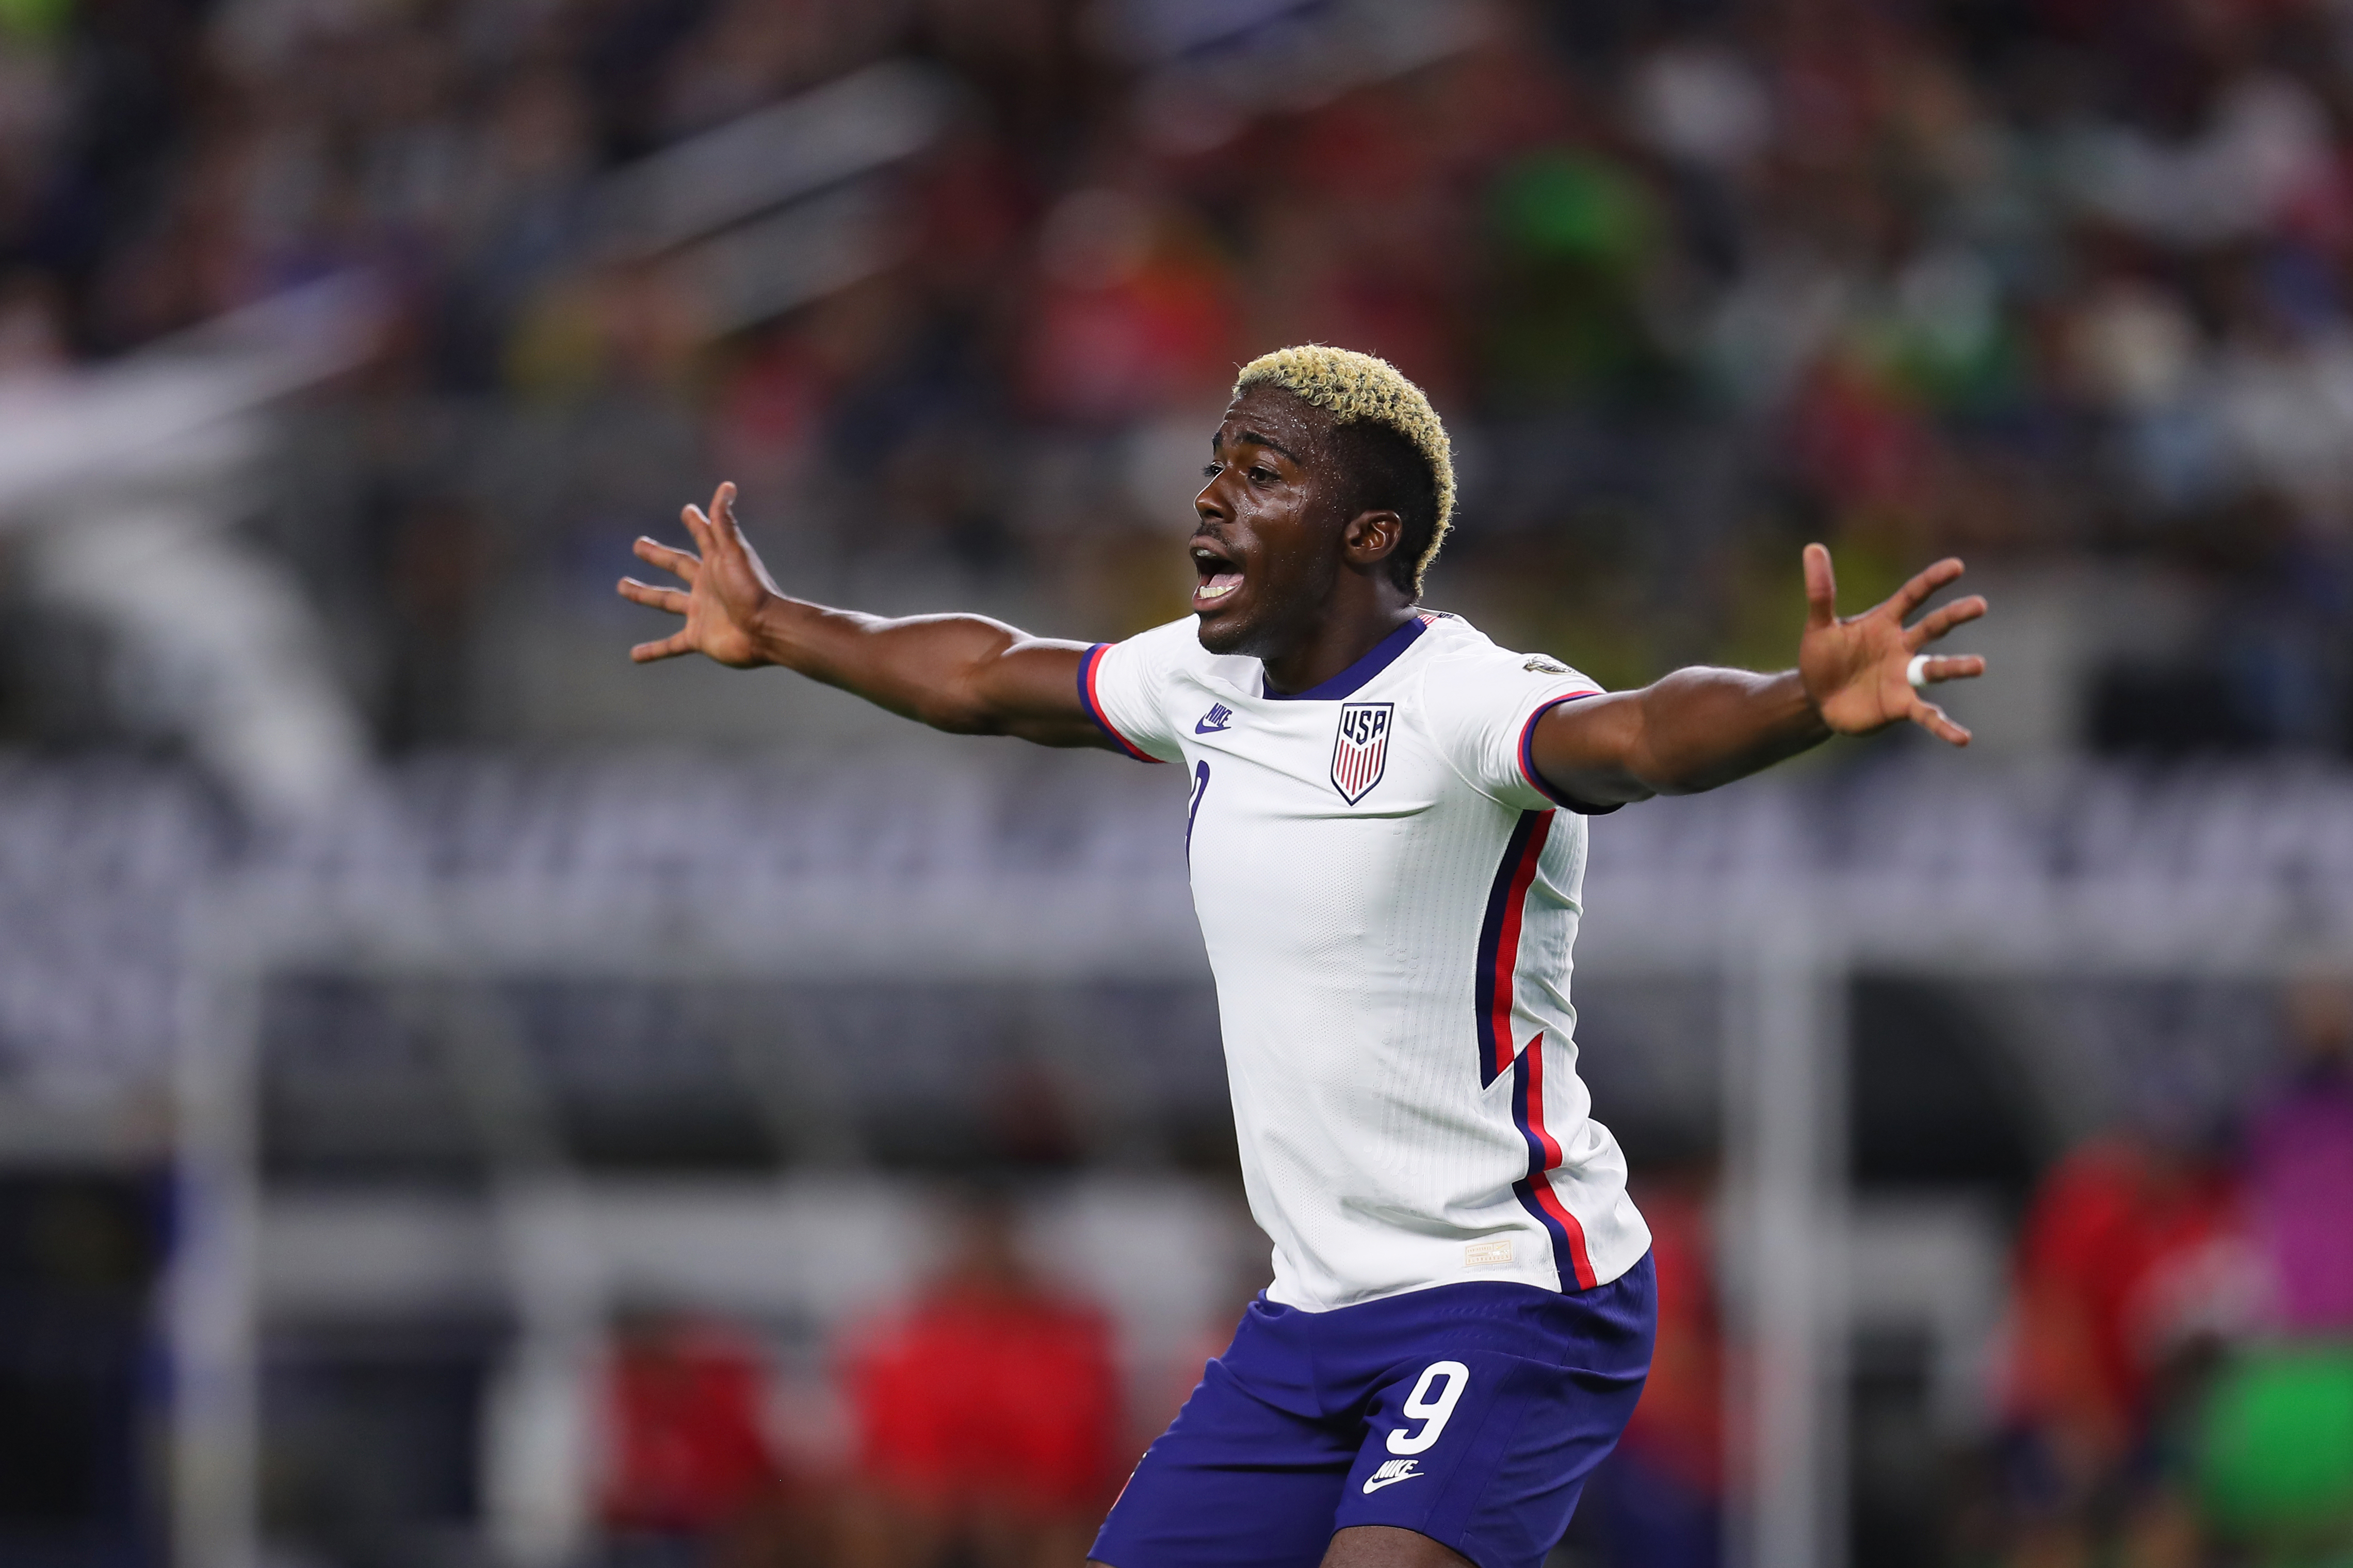 Gyasi Zardes #9 of United States reacts after missing a chance to score during to the a quarterfinal match between United States and Jamaica as part of 2021 CONCACAF Gold Cup at AT&T Stadium on July 25, 2021 in Arlington, Texas.